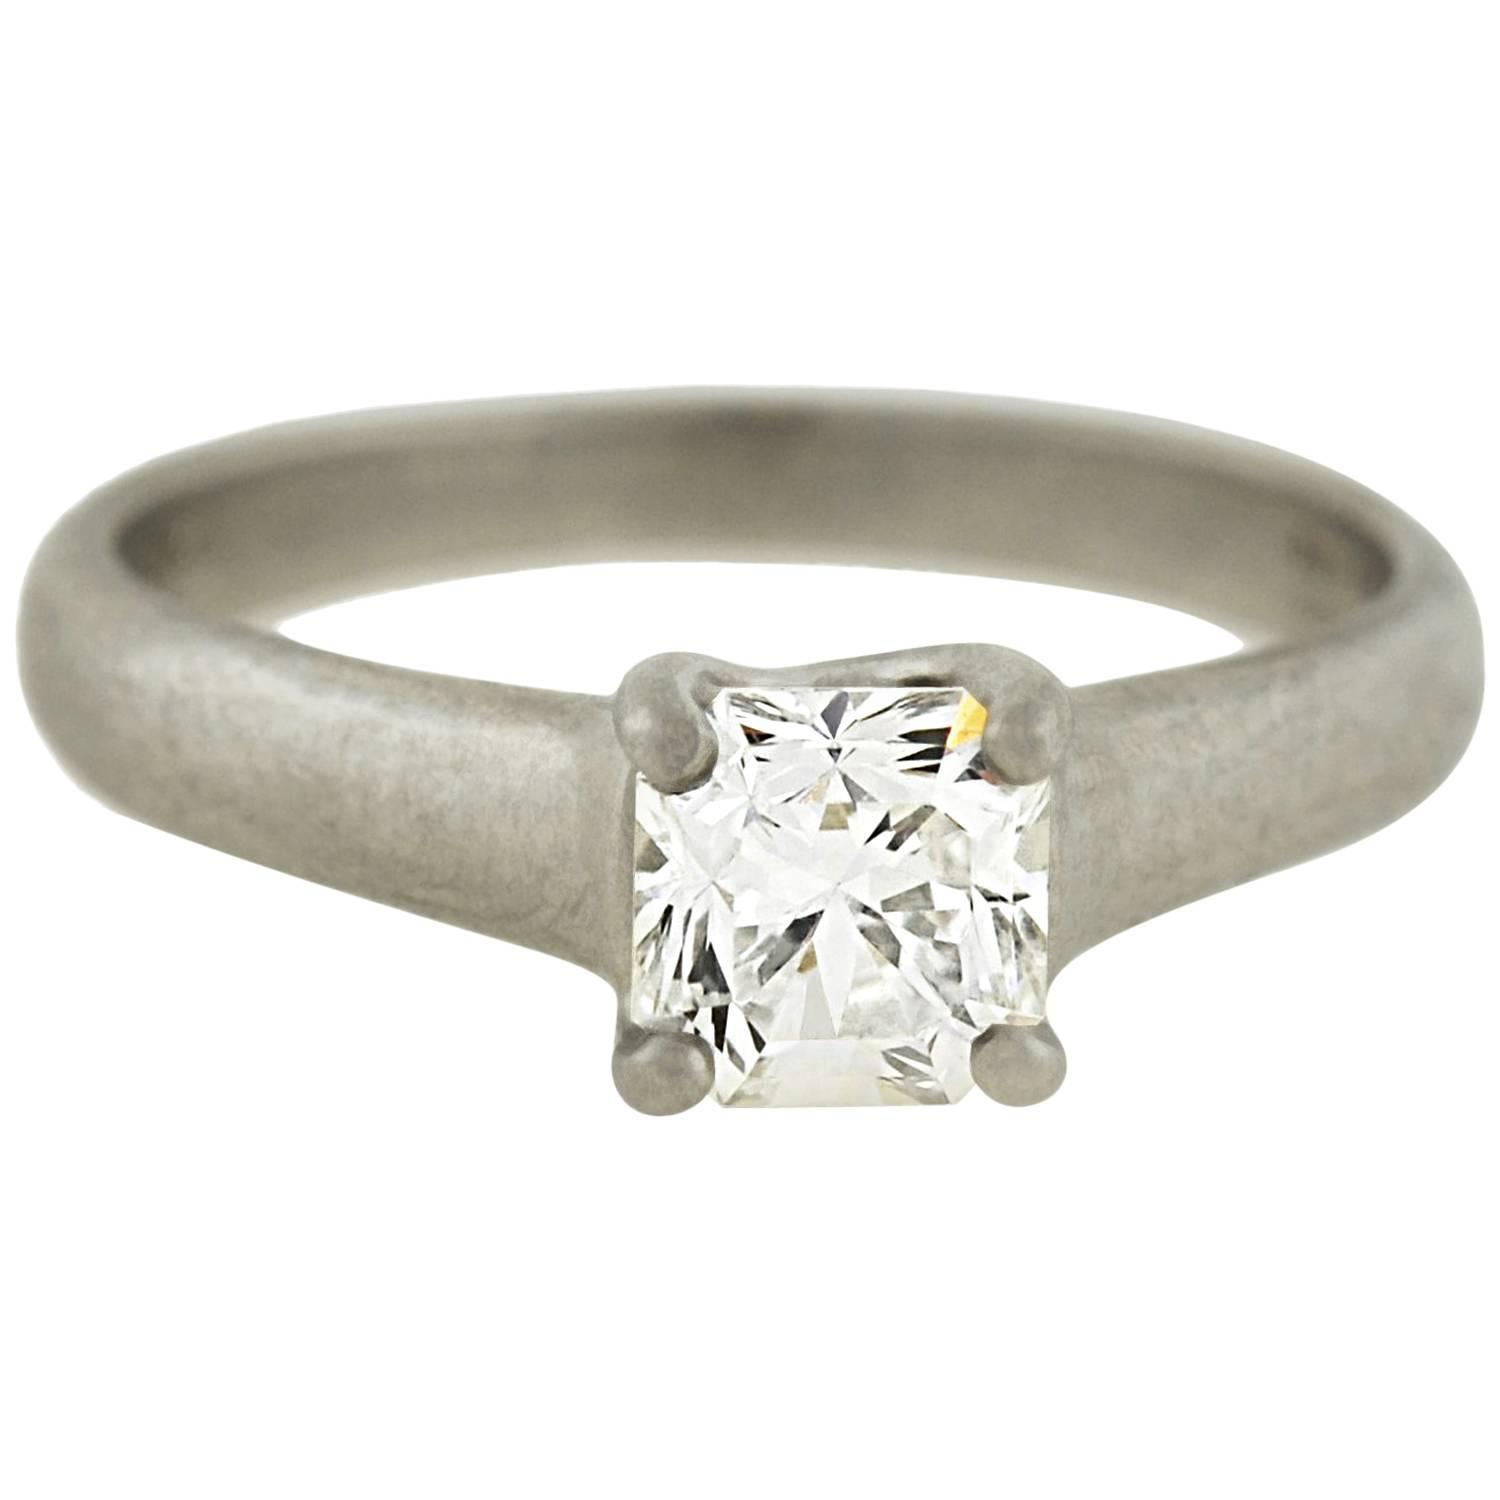 Tiffany and co lucida diamond engagement ring for sale at 1stdibs junglespirit Images